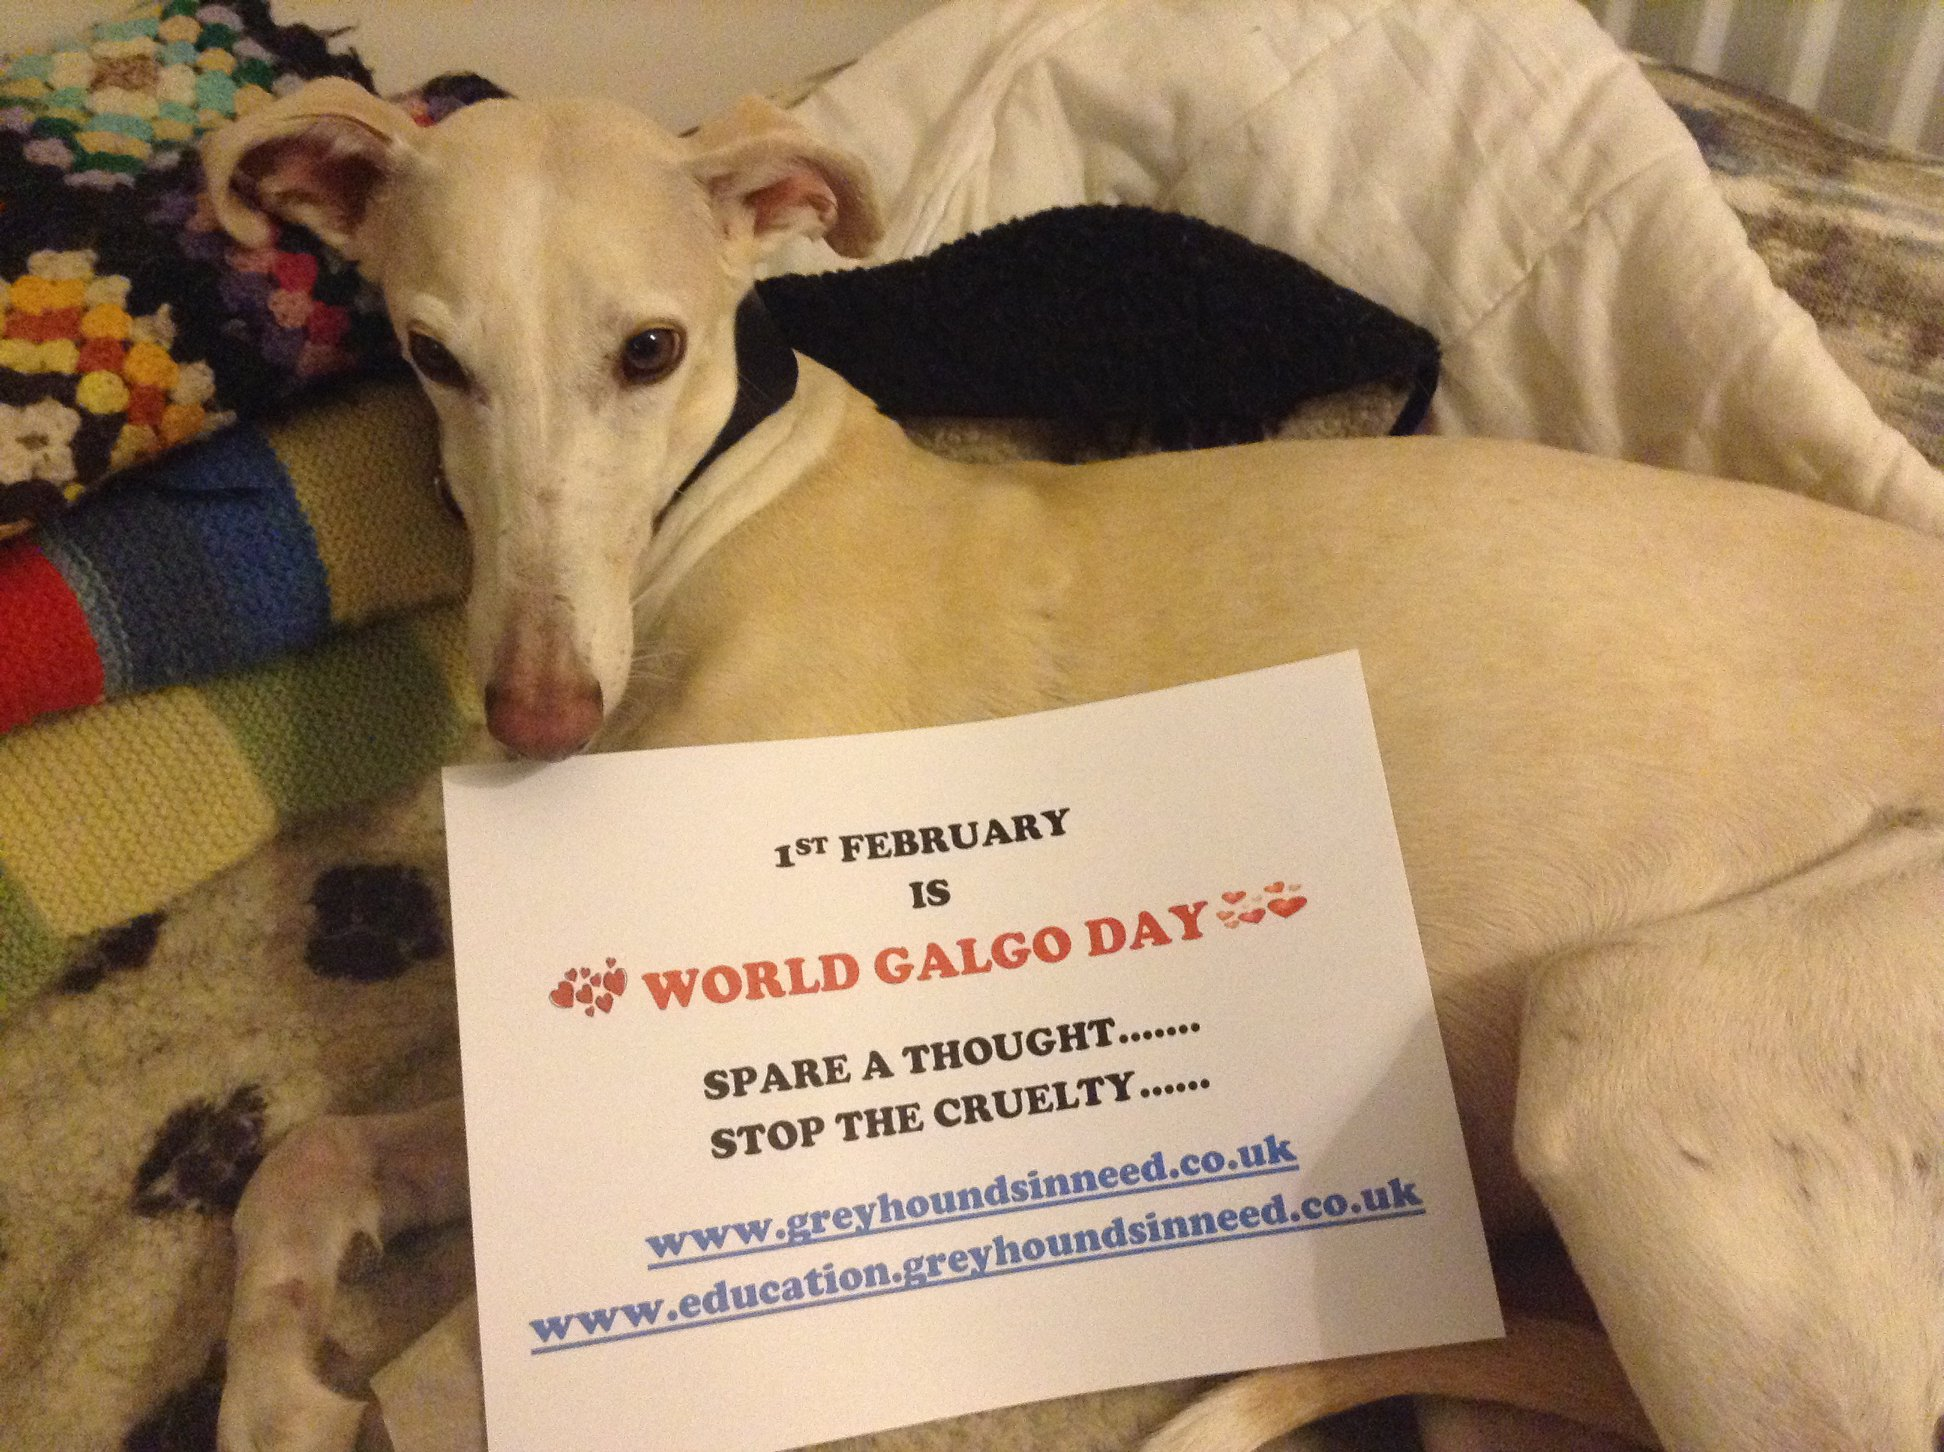 World Galgo Day